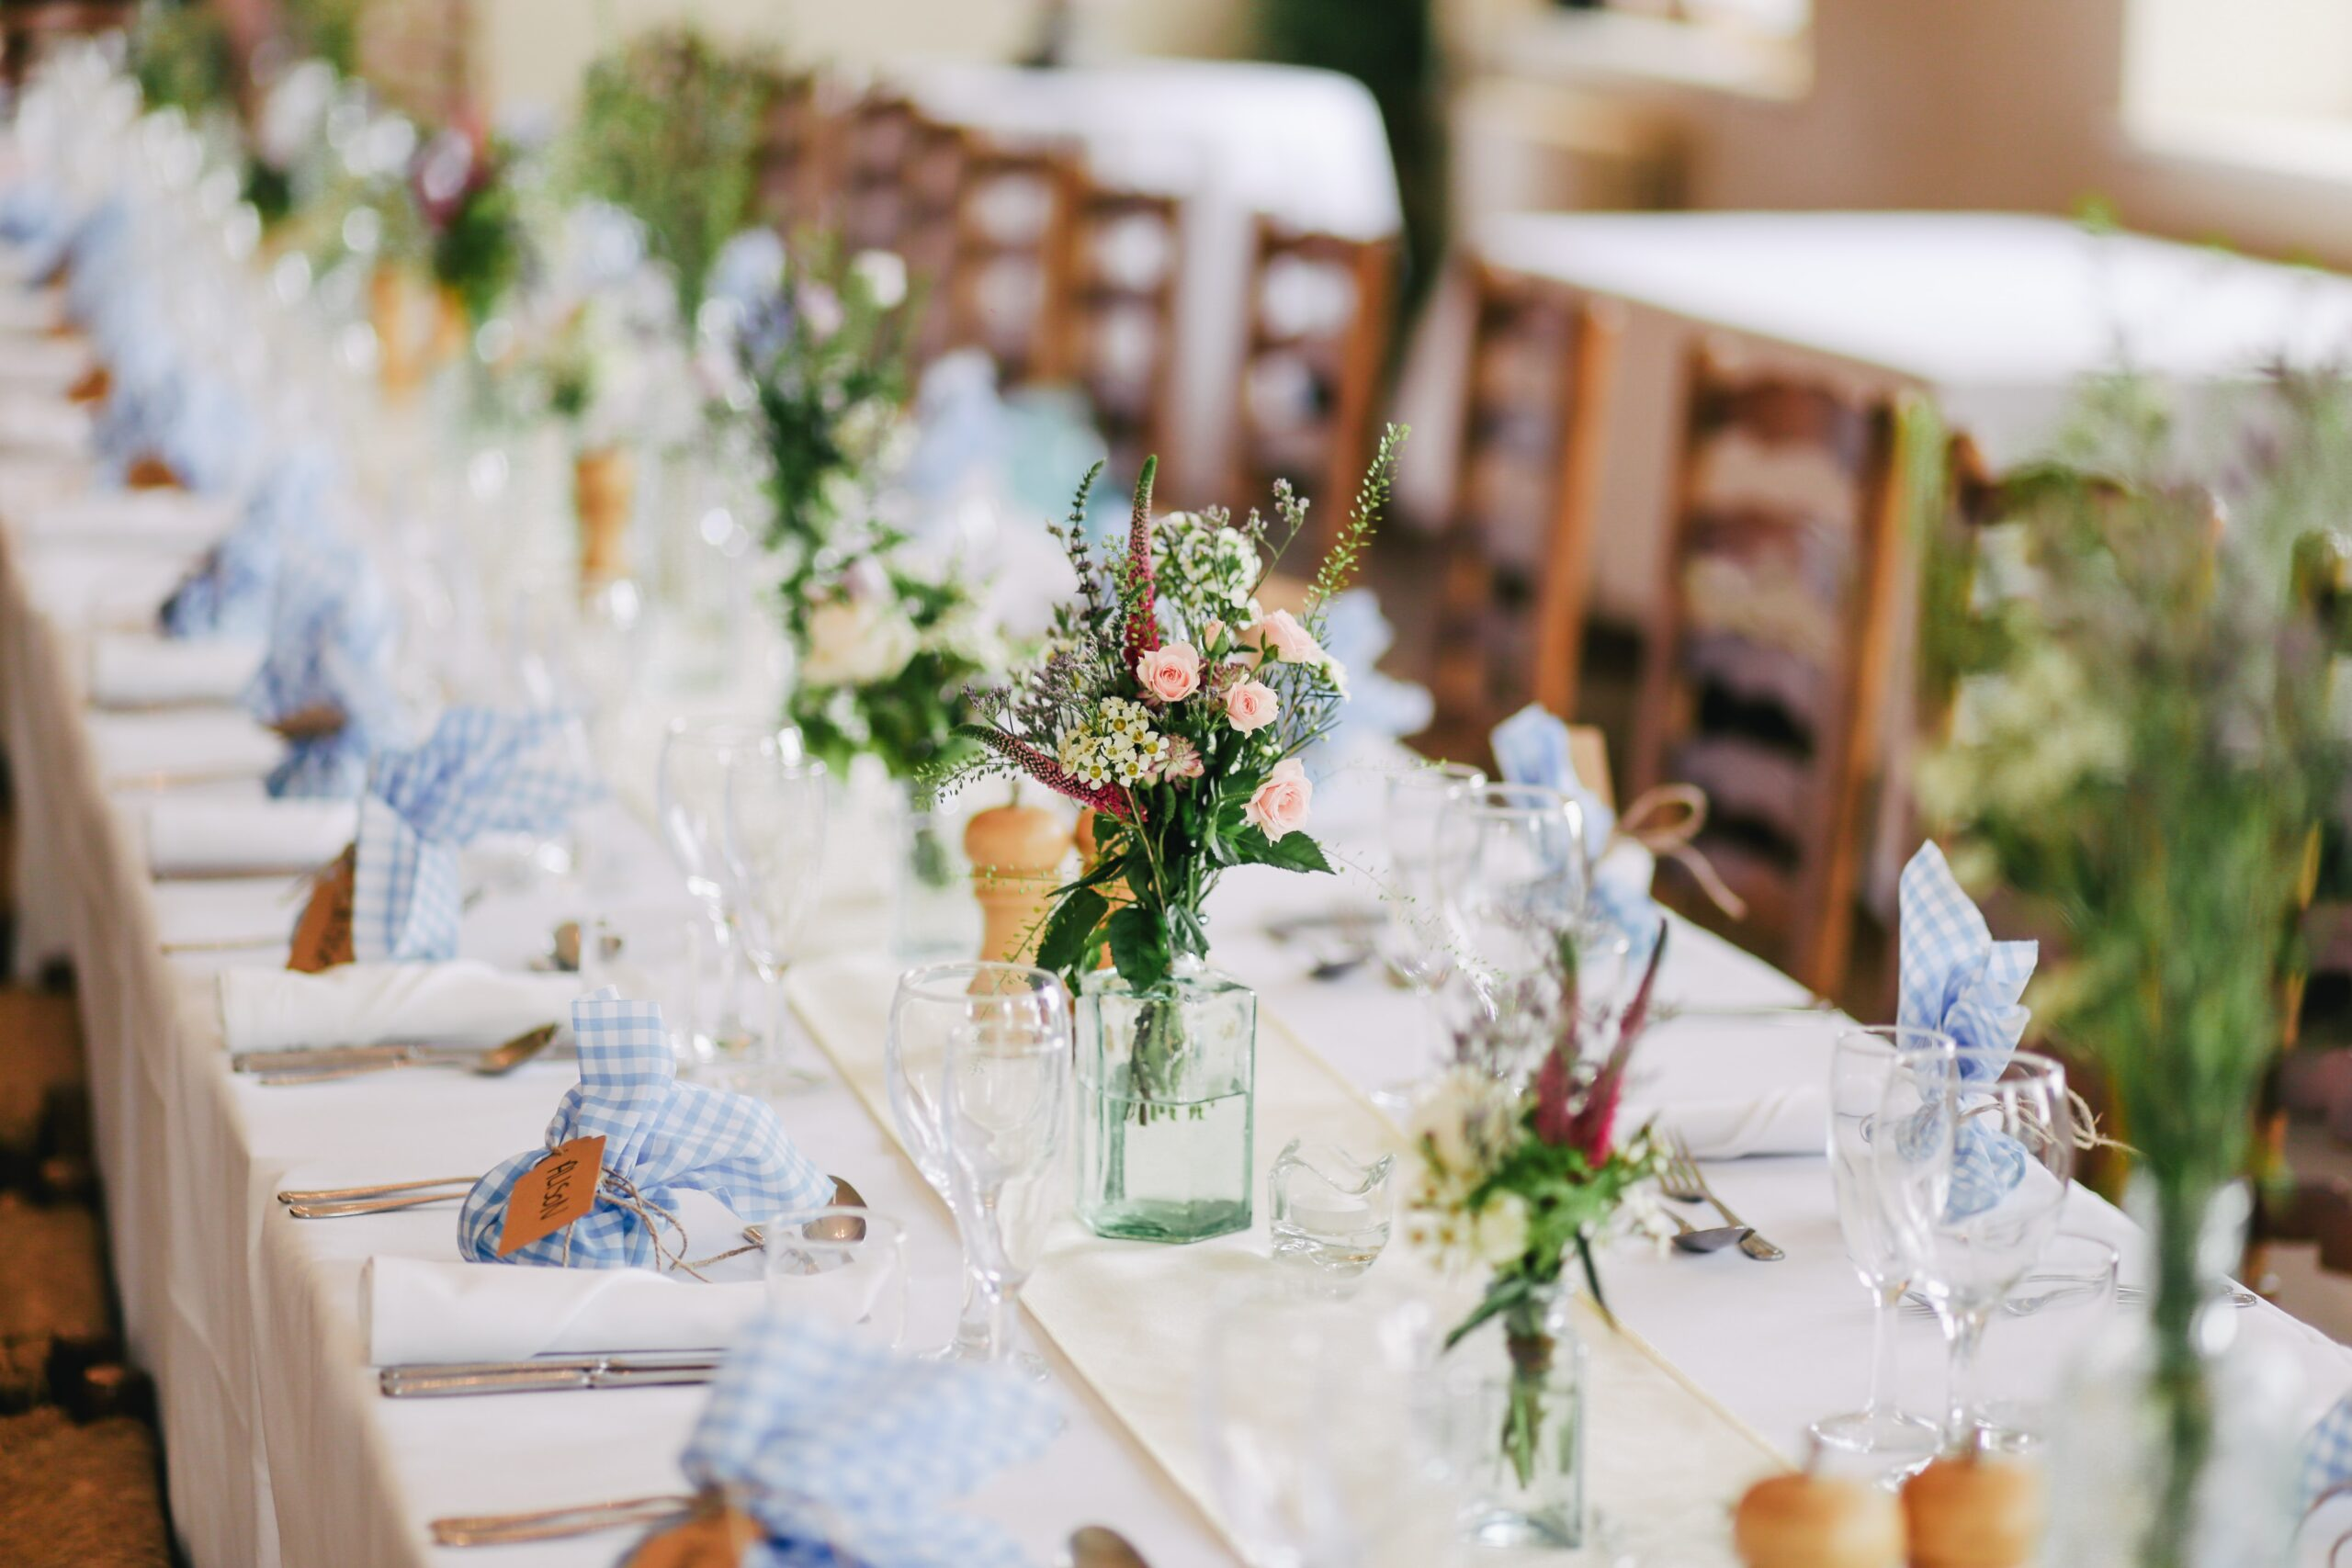 Our 5 Favourite Upscale DIY Wedding Trends